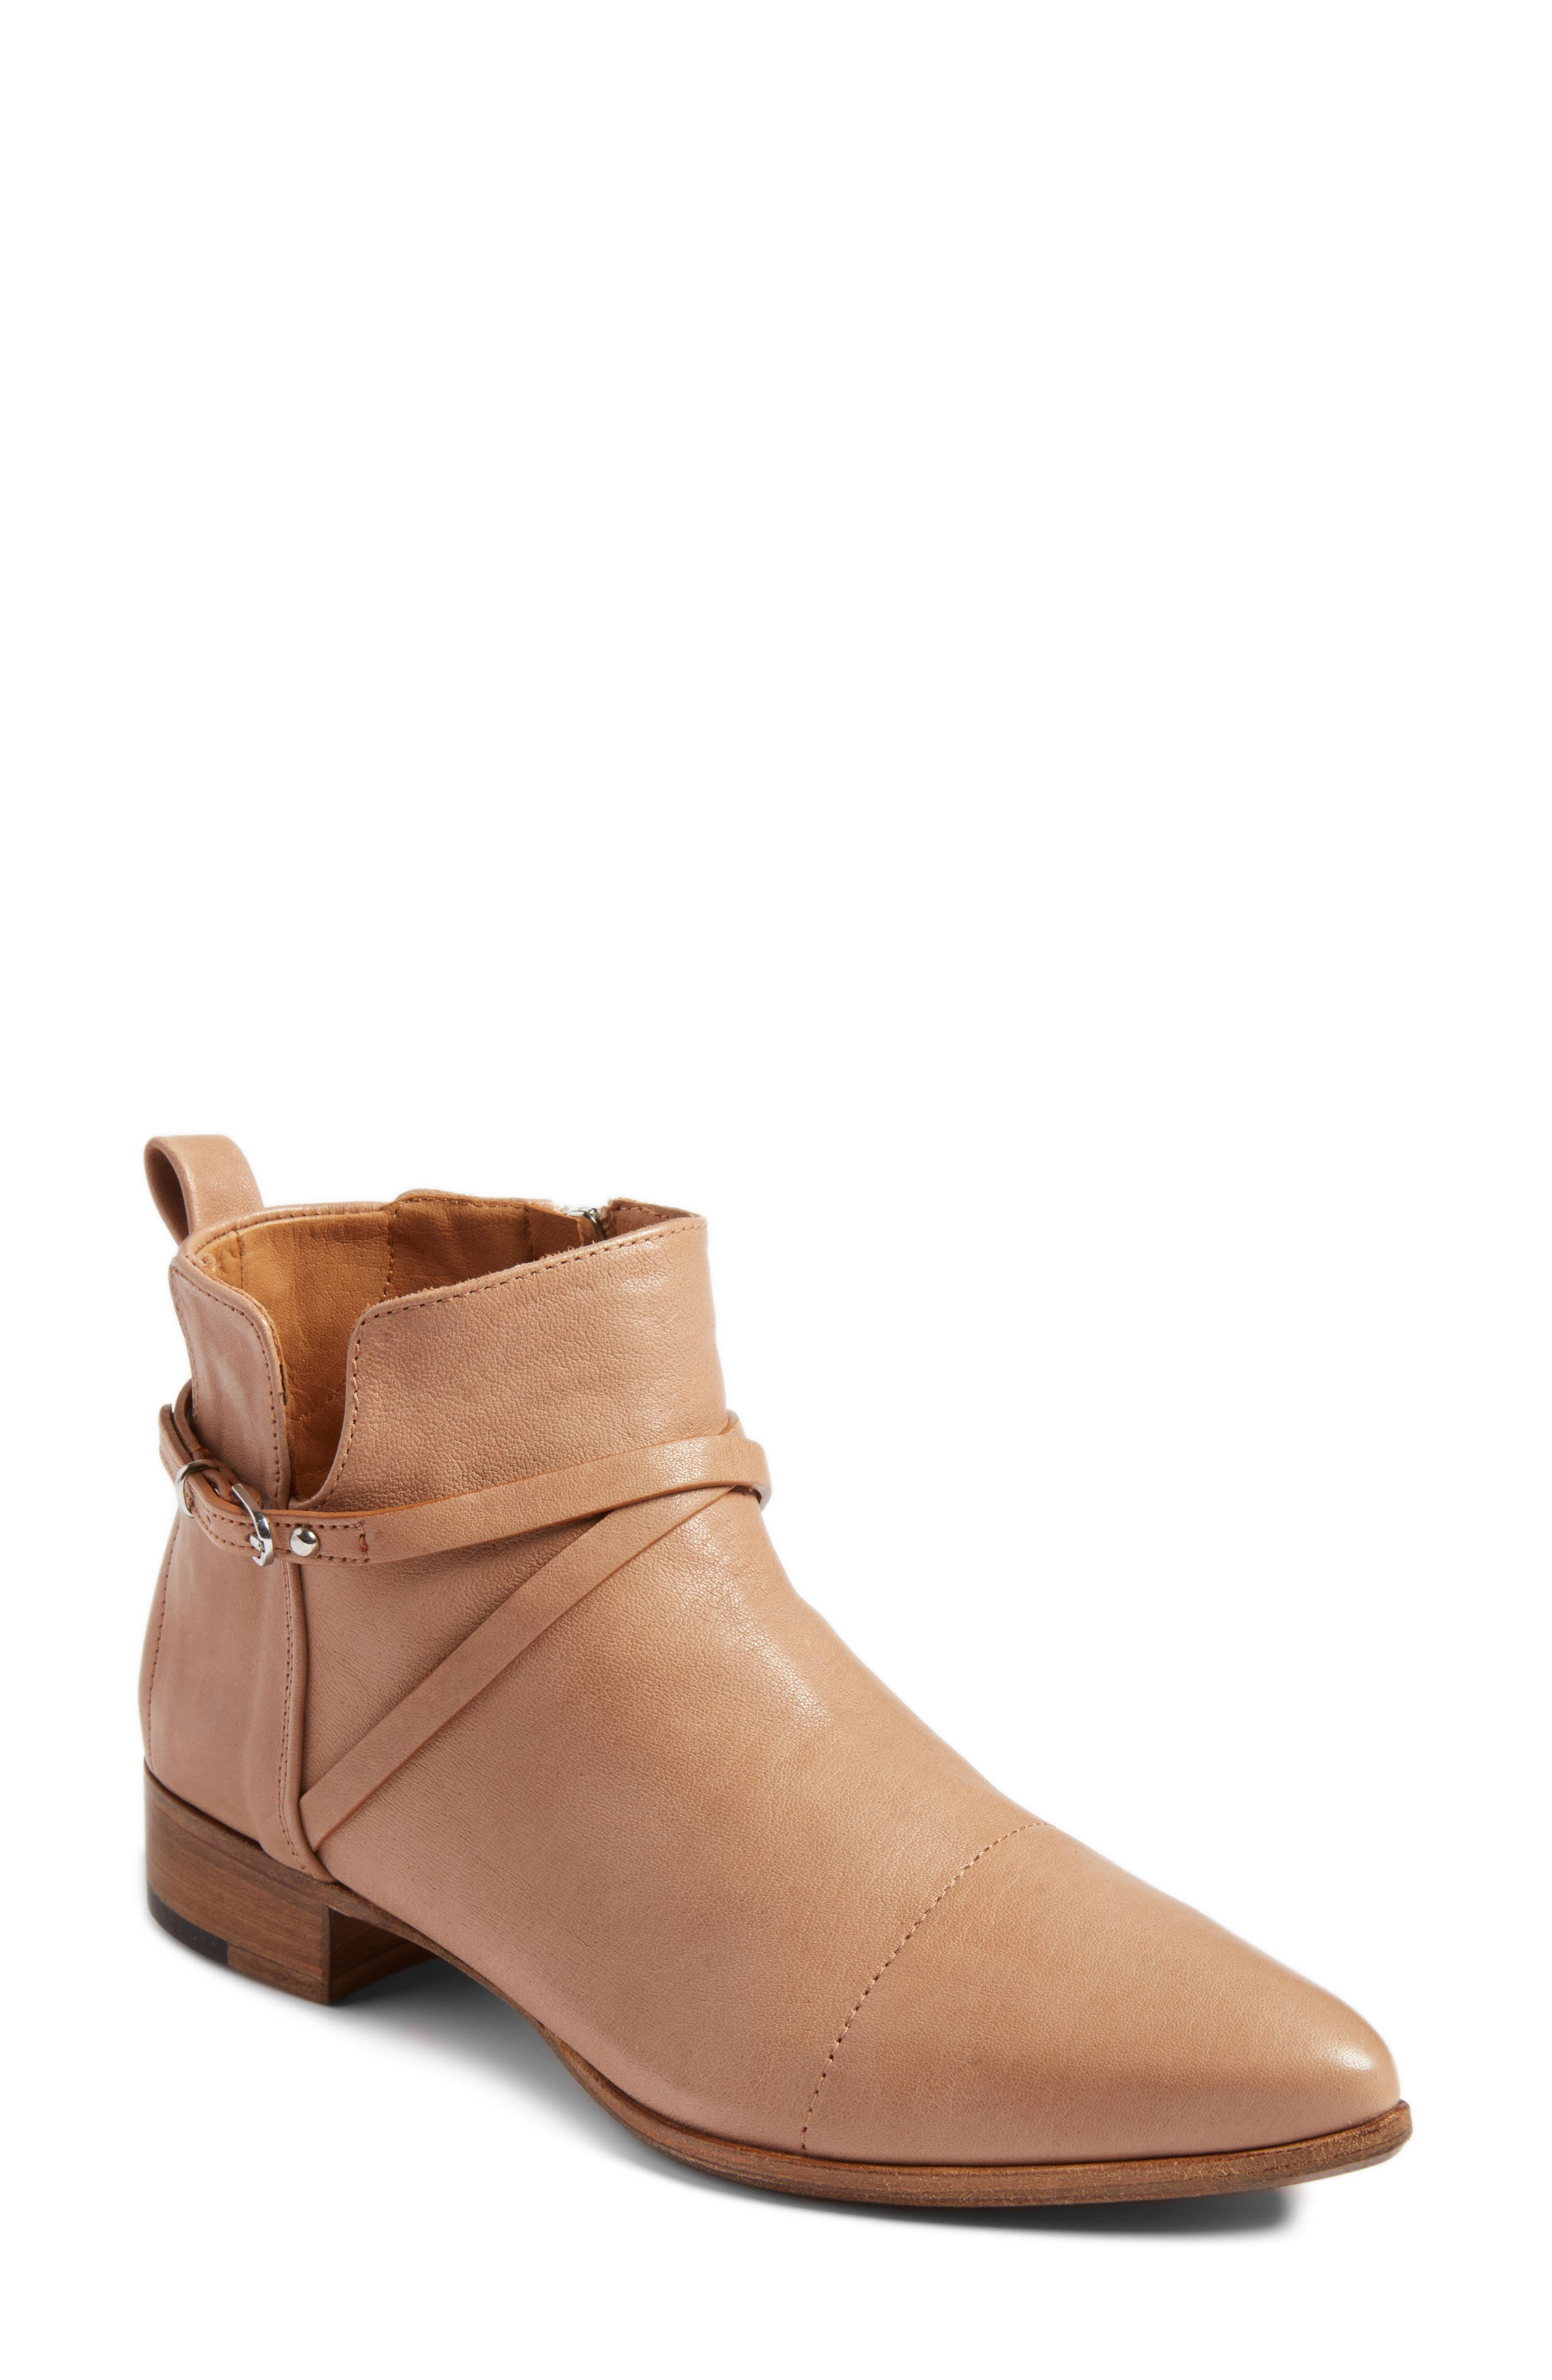 'Mea' Ankle Boot,                             Main thumbnail 2, color,